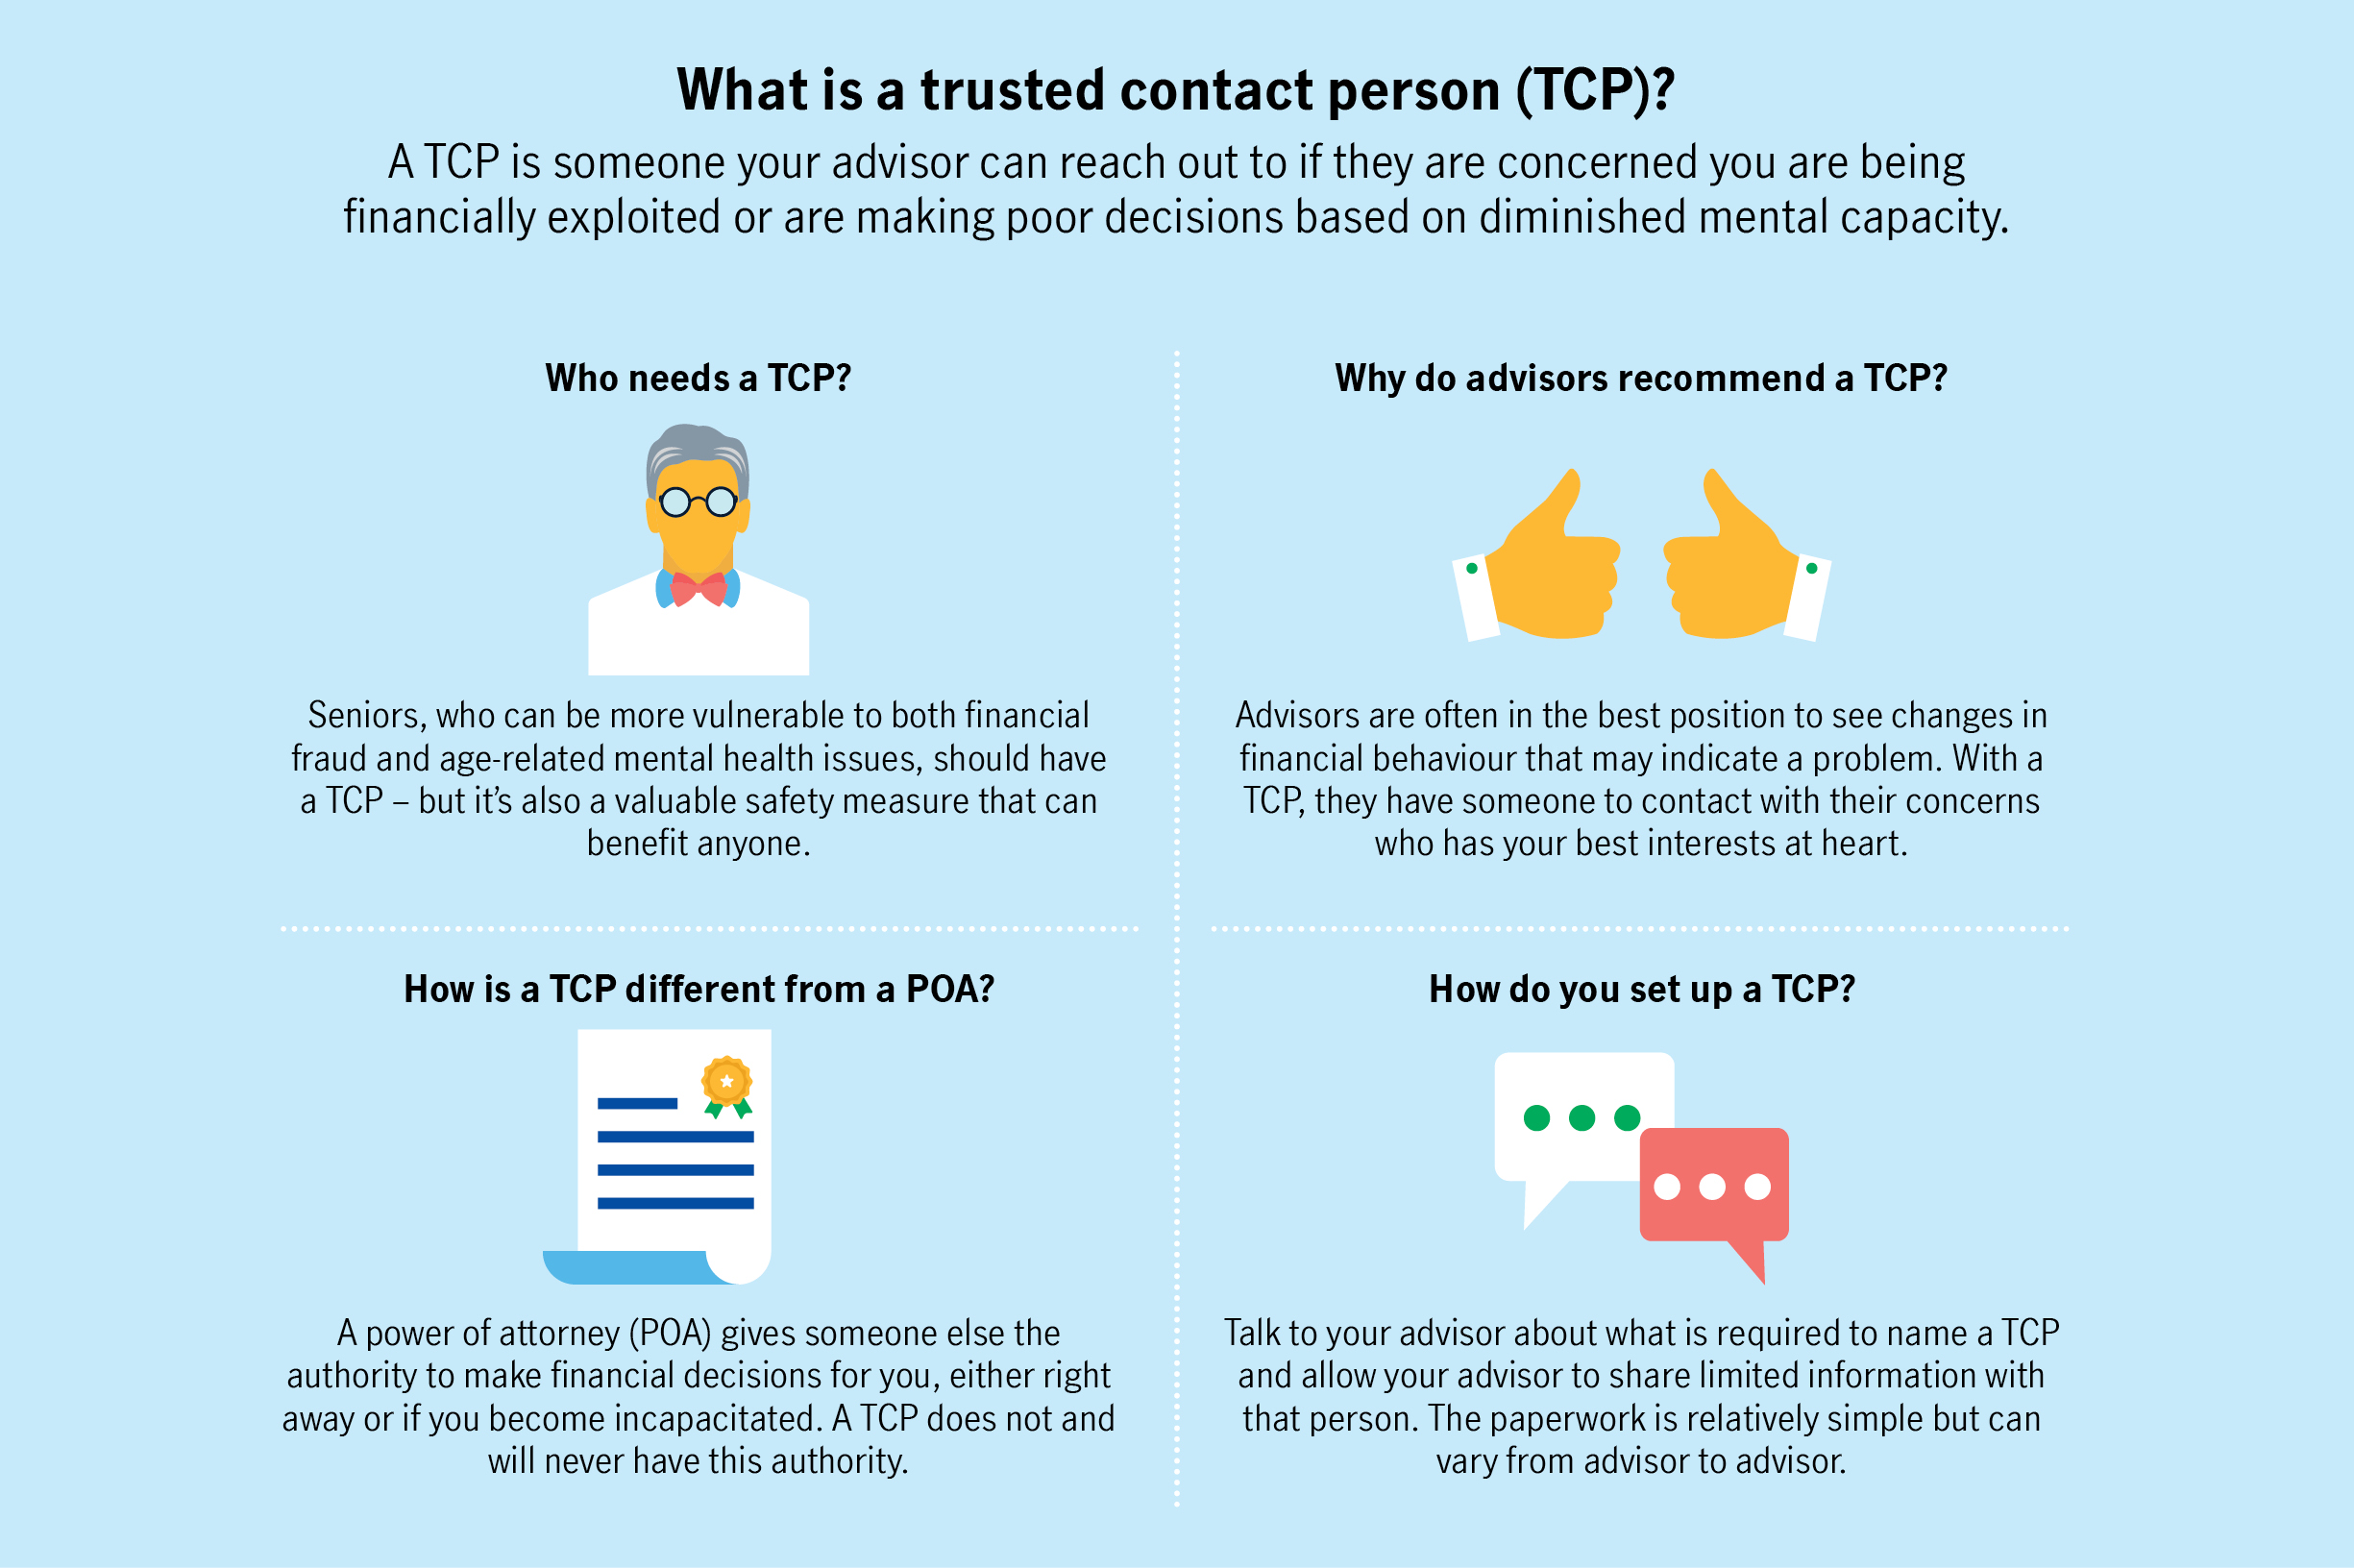 What is a trusted contact person (TCP)?  A TCP is someone your advisor can reach out to if they are concerned you are being financially exploited or are making poor decisions based on diminished mental capacity.  Who needs a TCP? Seniors, who can be more vulnerable to both financial fraud and age-related mental health issues, should have a TCP – but it's also a valuable safety measure that can benefit anyone.  Why do advisors recommend a TCP? Advisors are often in the best position to see changes in financial behaviour that may indicate a problem. With a TCP, they have someone to contact with their concerns who has your best interests at heart.  How is a TCP different from a POA? A power of attorney (POA) gives someone else the authority to make financial decisions for you, either right away or if you become incapacitated. A TCP does not and will never have this authority.   How do you set up a TCP? Talk to your advisor about what is required to name a TCP and allow your advisor to share limited information with that person. The paperwork is relatively simple but can vary from advisor to advisor.